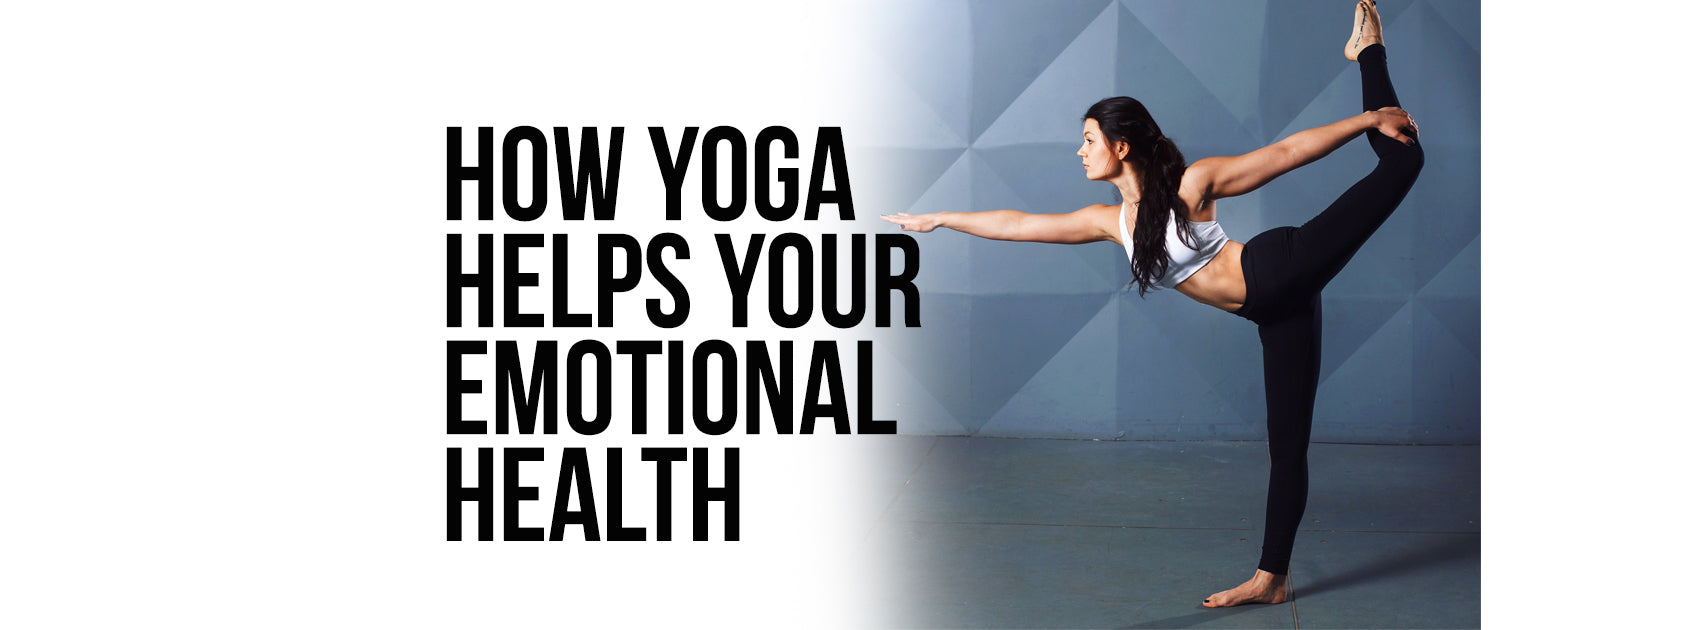 How Yoga Helps Your Emotional Health